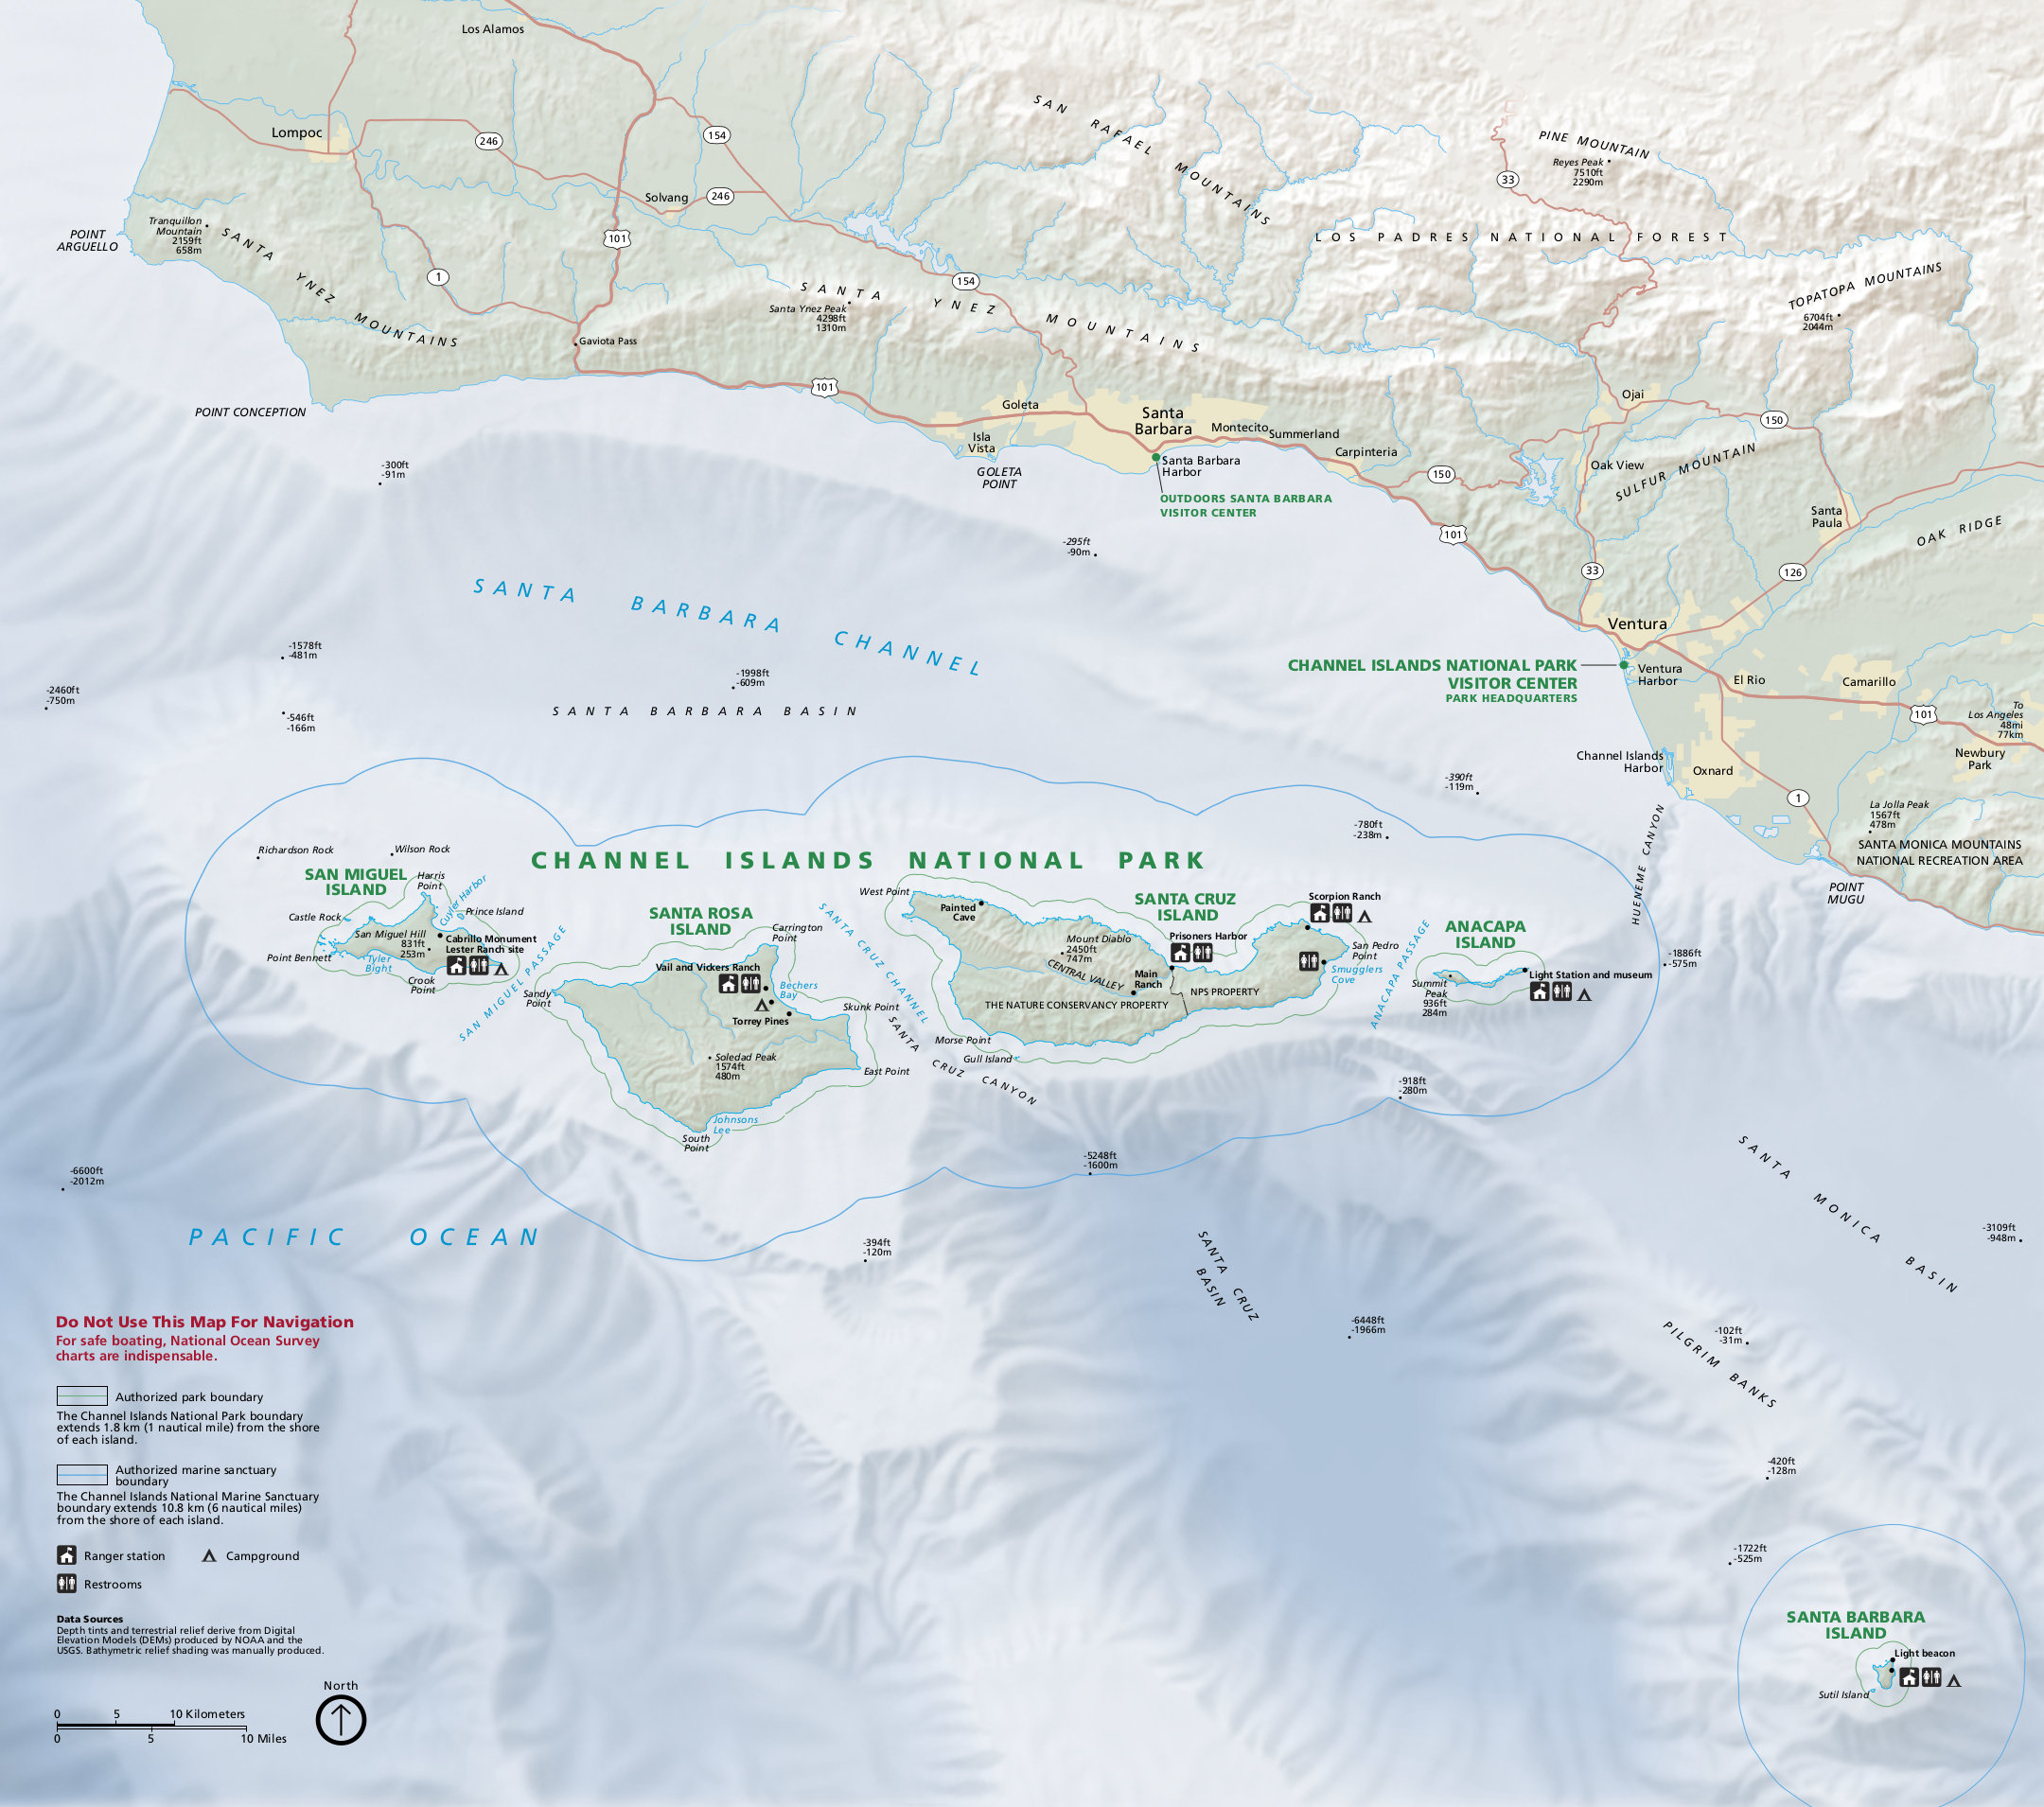 Channel Islands Maps NPMapscom just free maps period